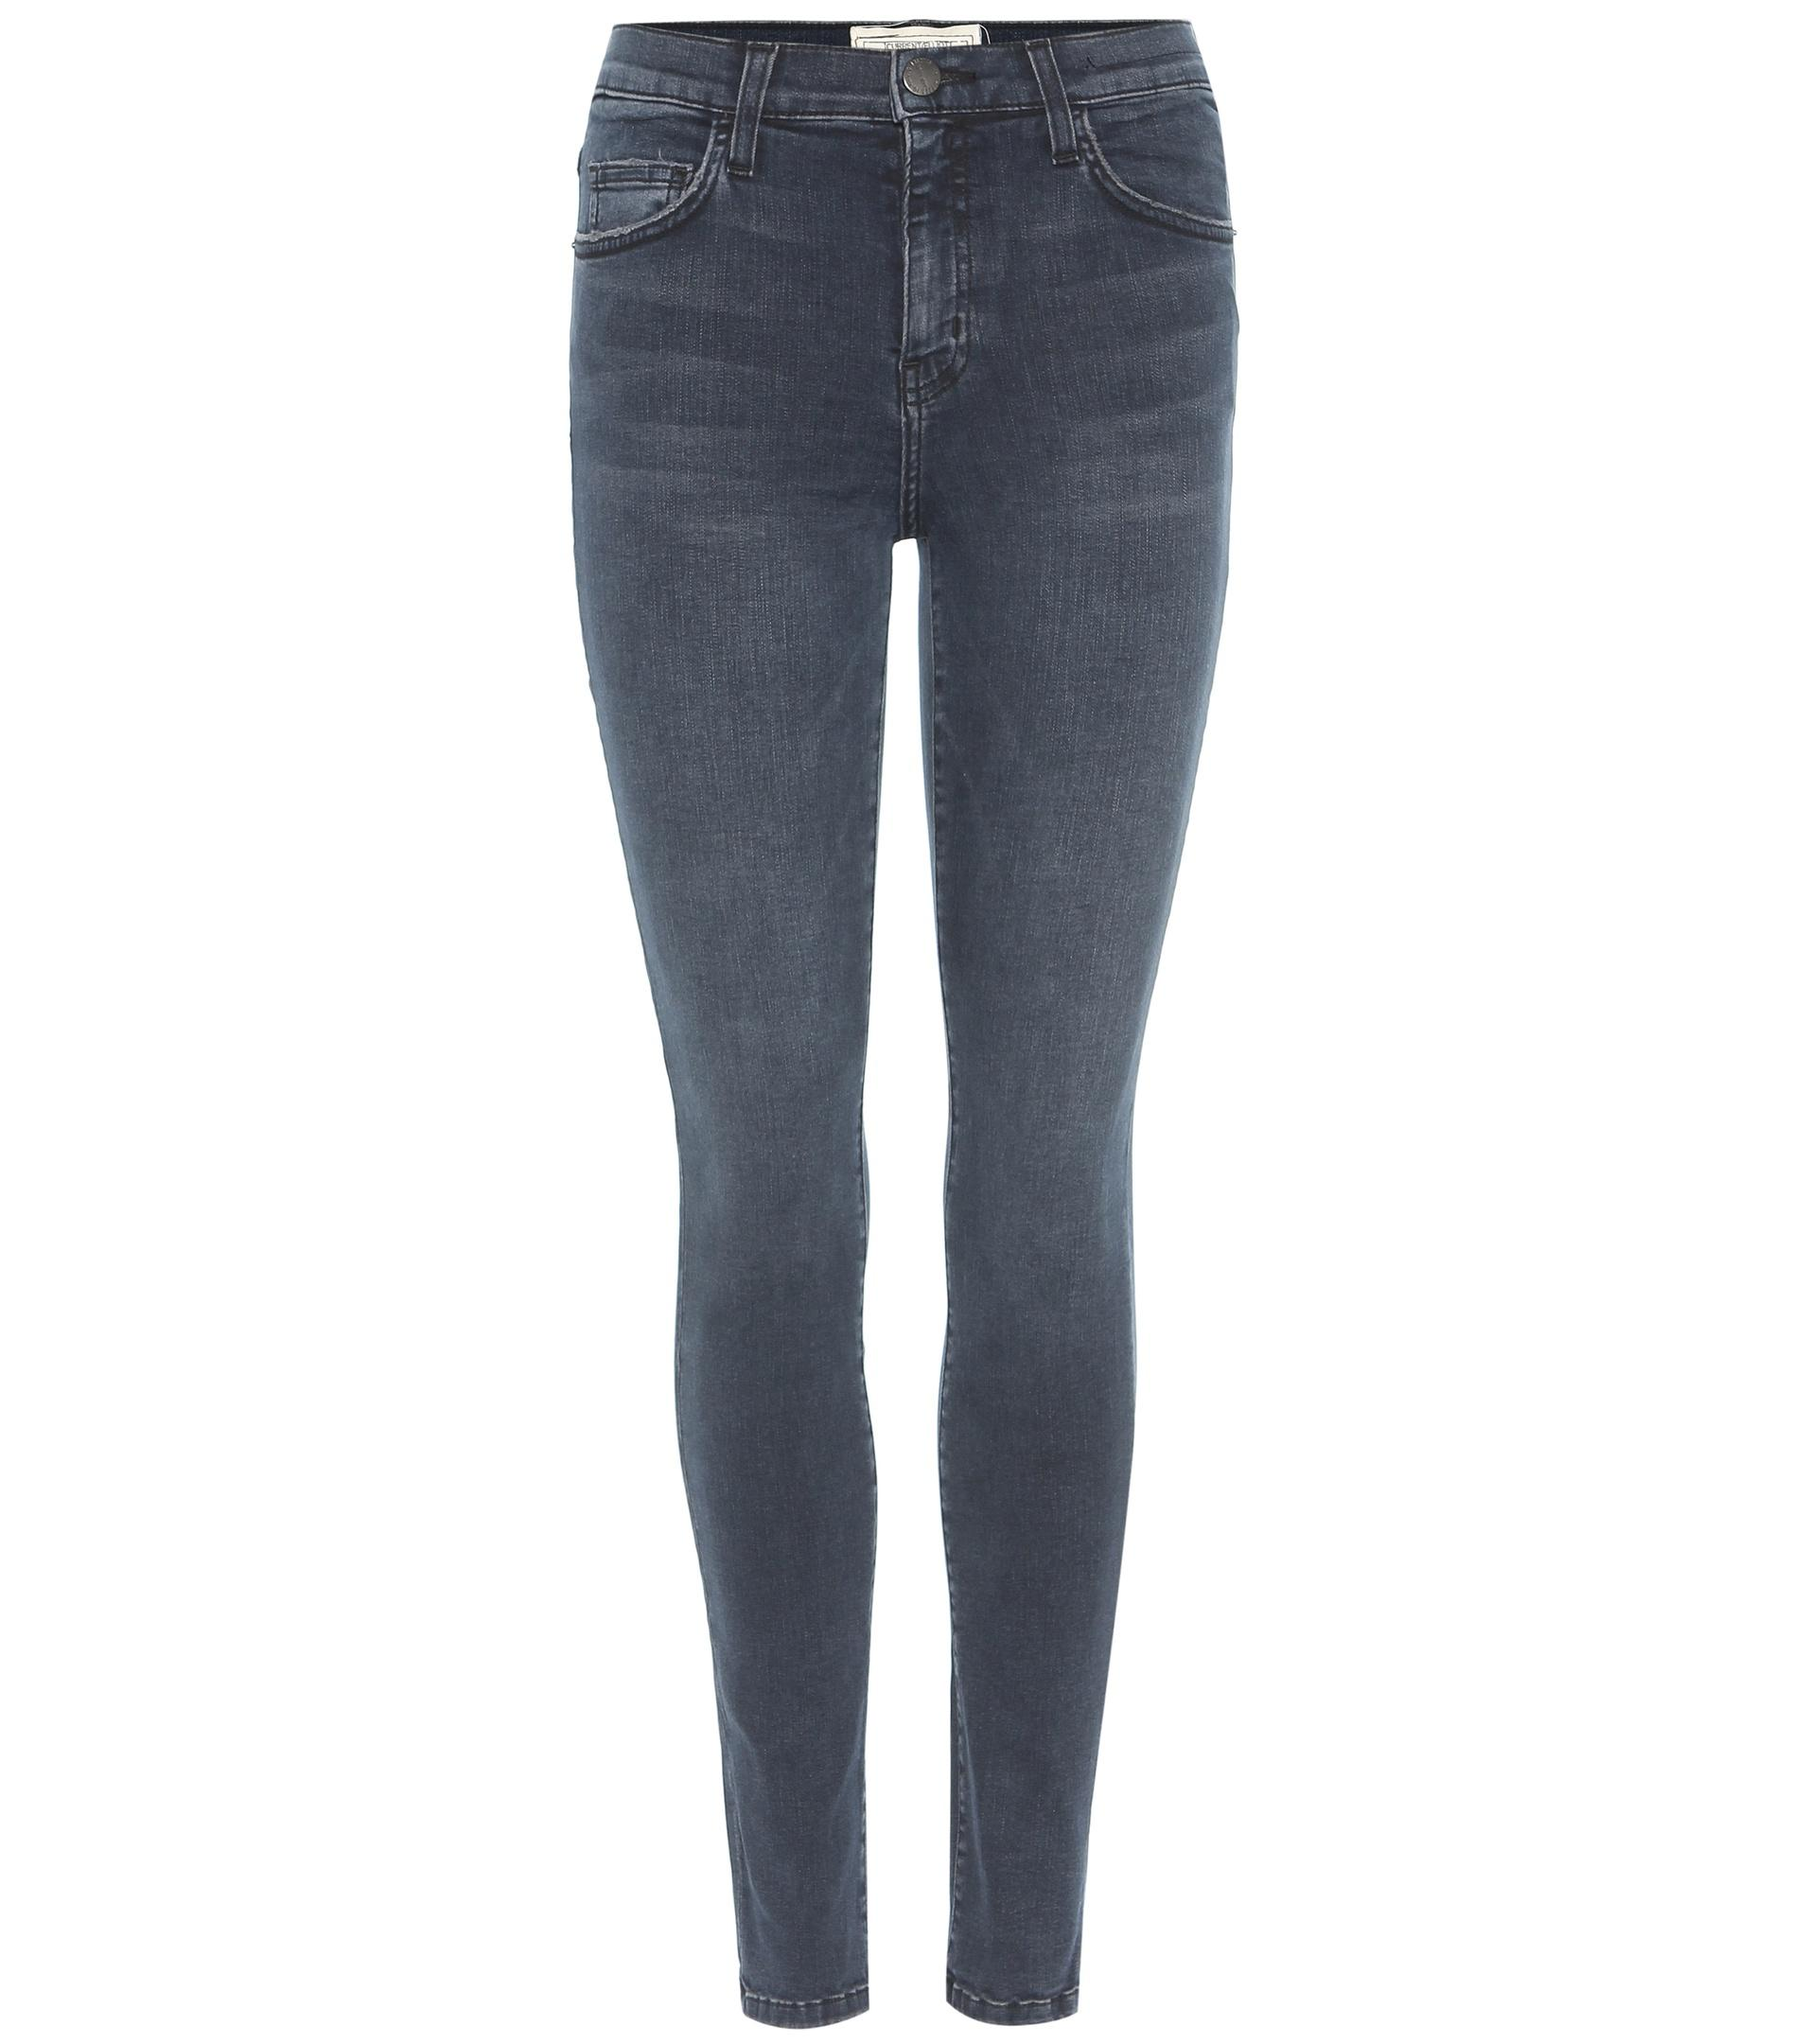 Current/elliott The High Waist Ankle Skinny Jeans in Blue | Lyst